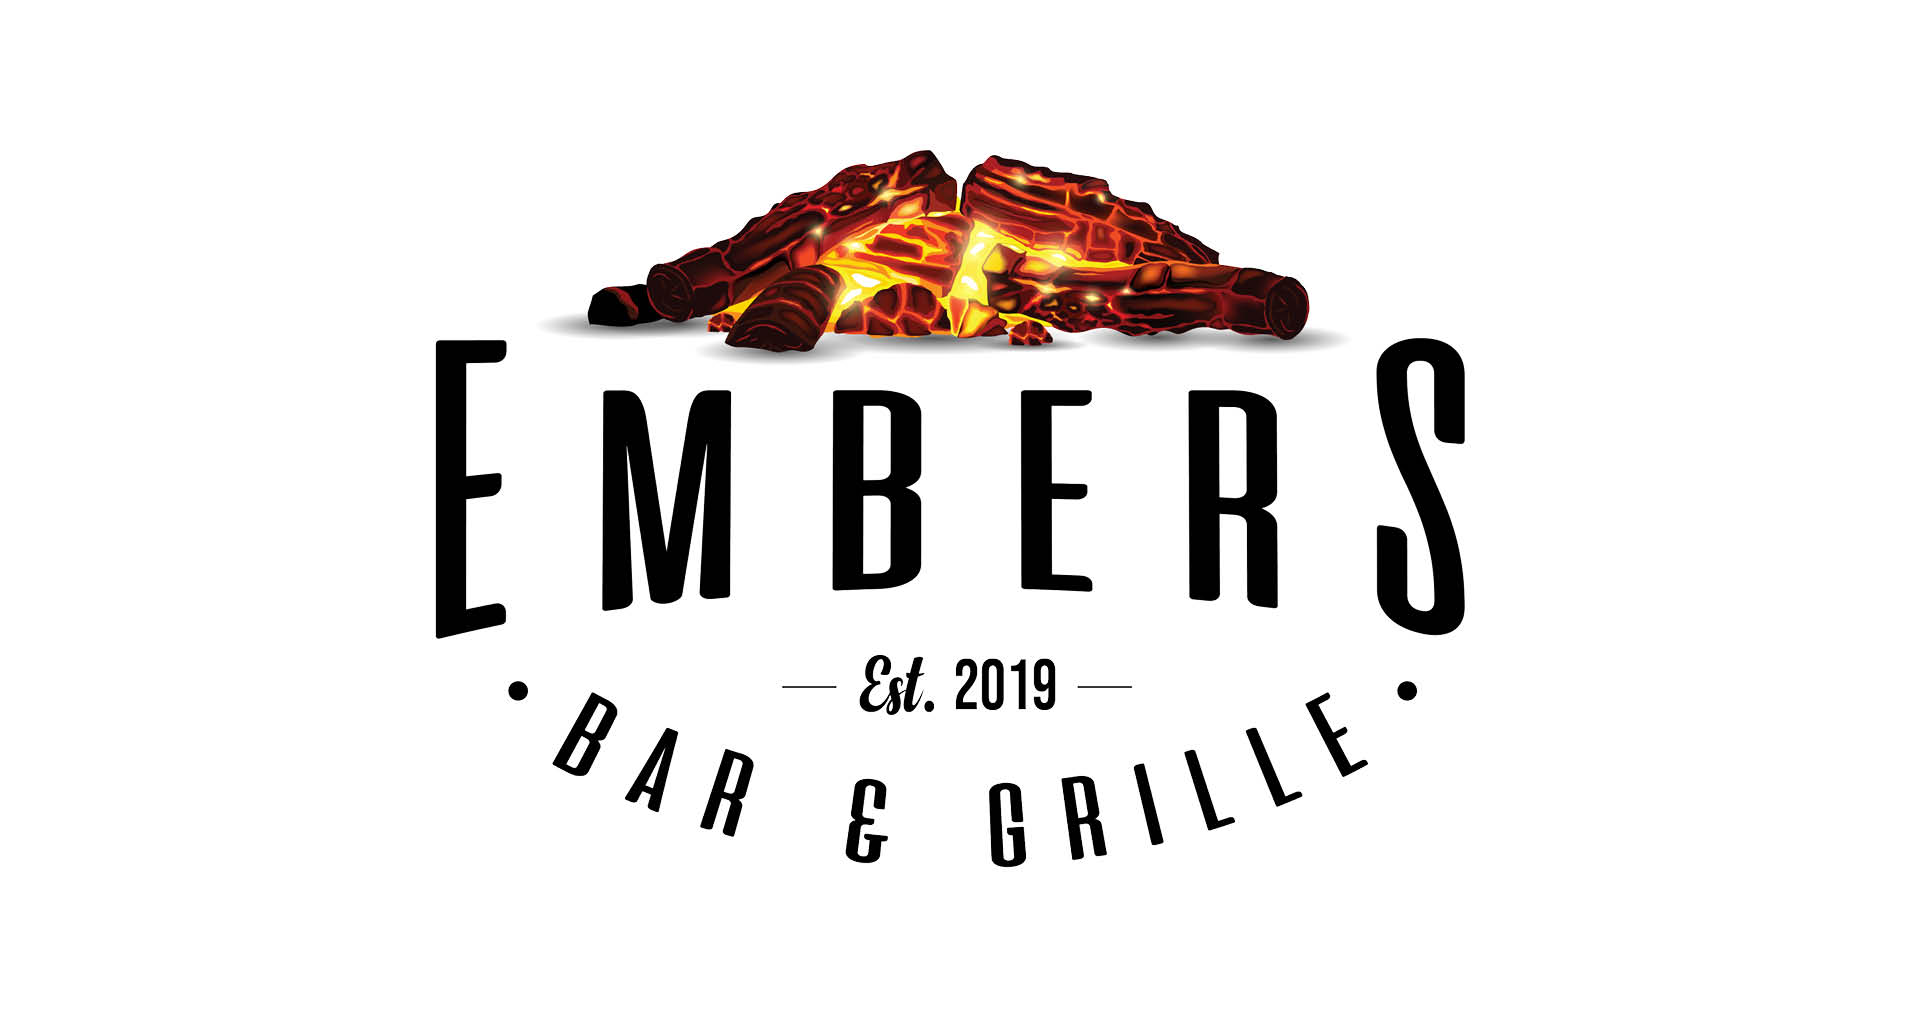 Embers Bar & Grille at Prairie Band Casino & Resort